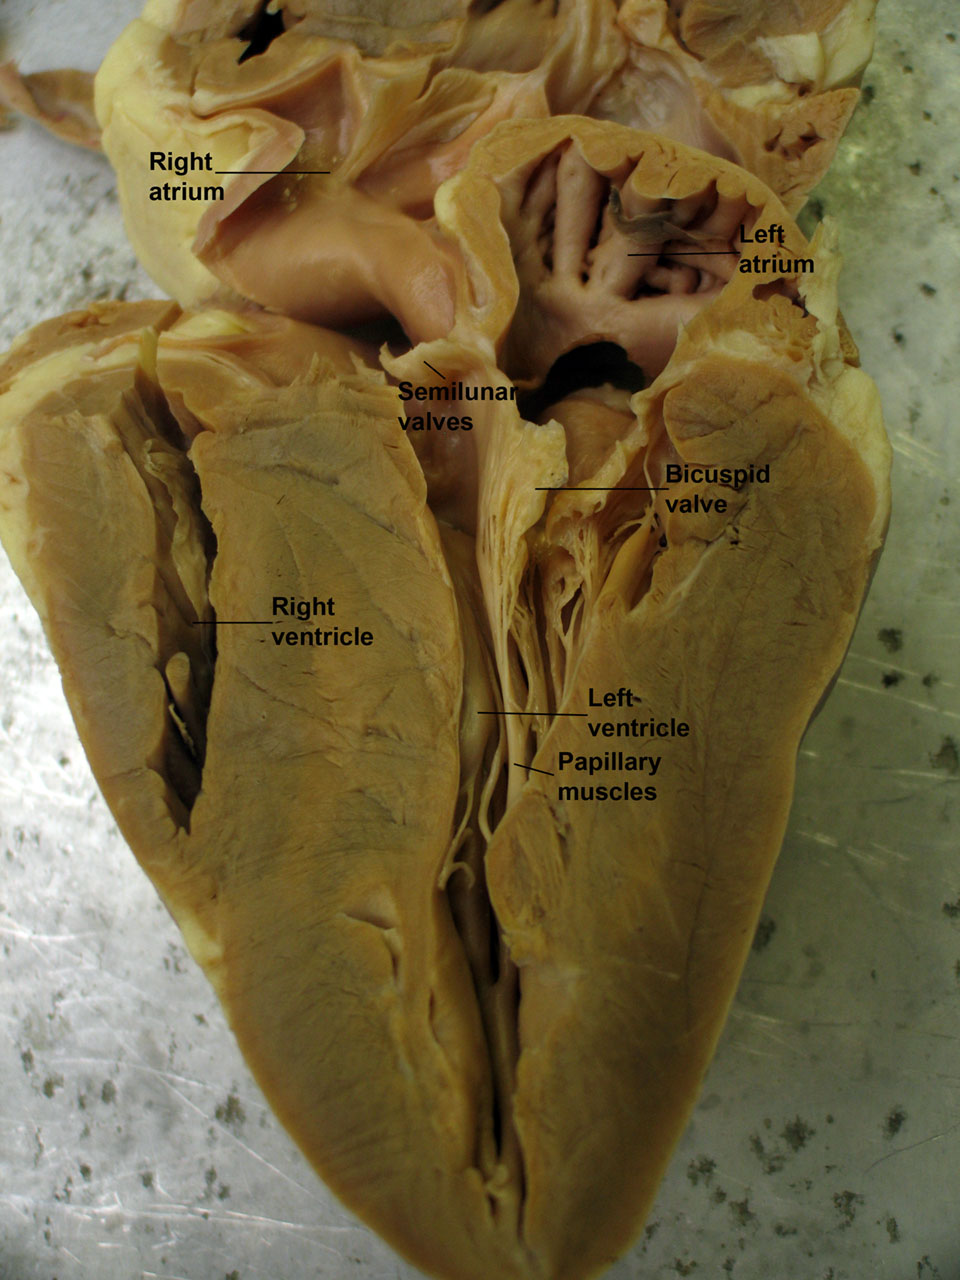 worksheet Sheep Heart Dissection Worksheet its a matter of the heart httpwww quepid orgwordpresswp contentuploads200812sheep heart1 jpg